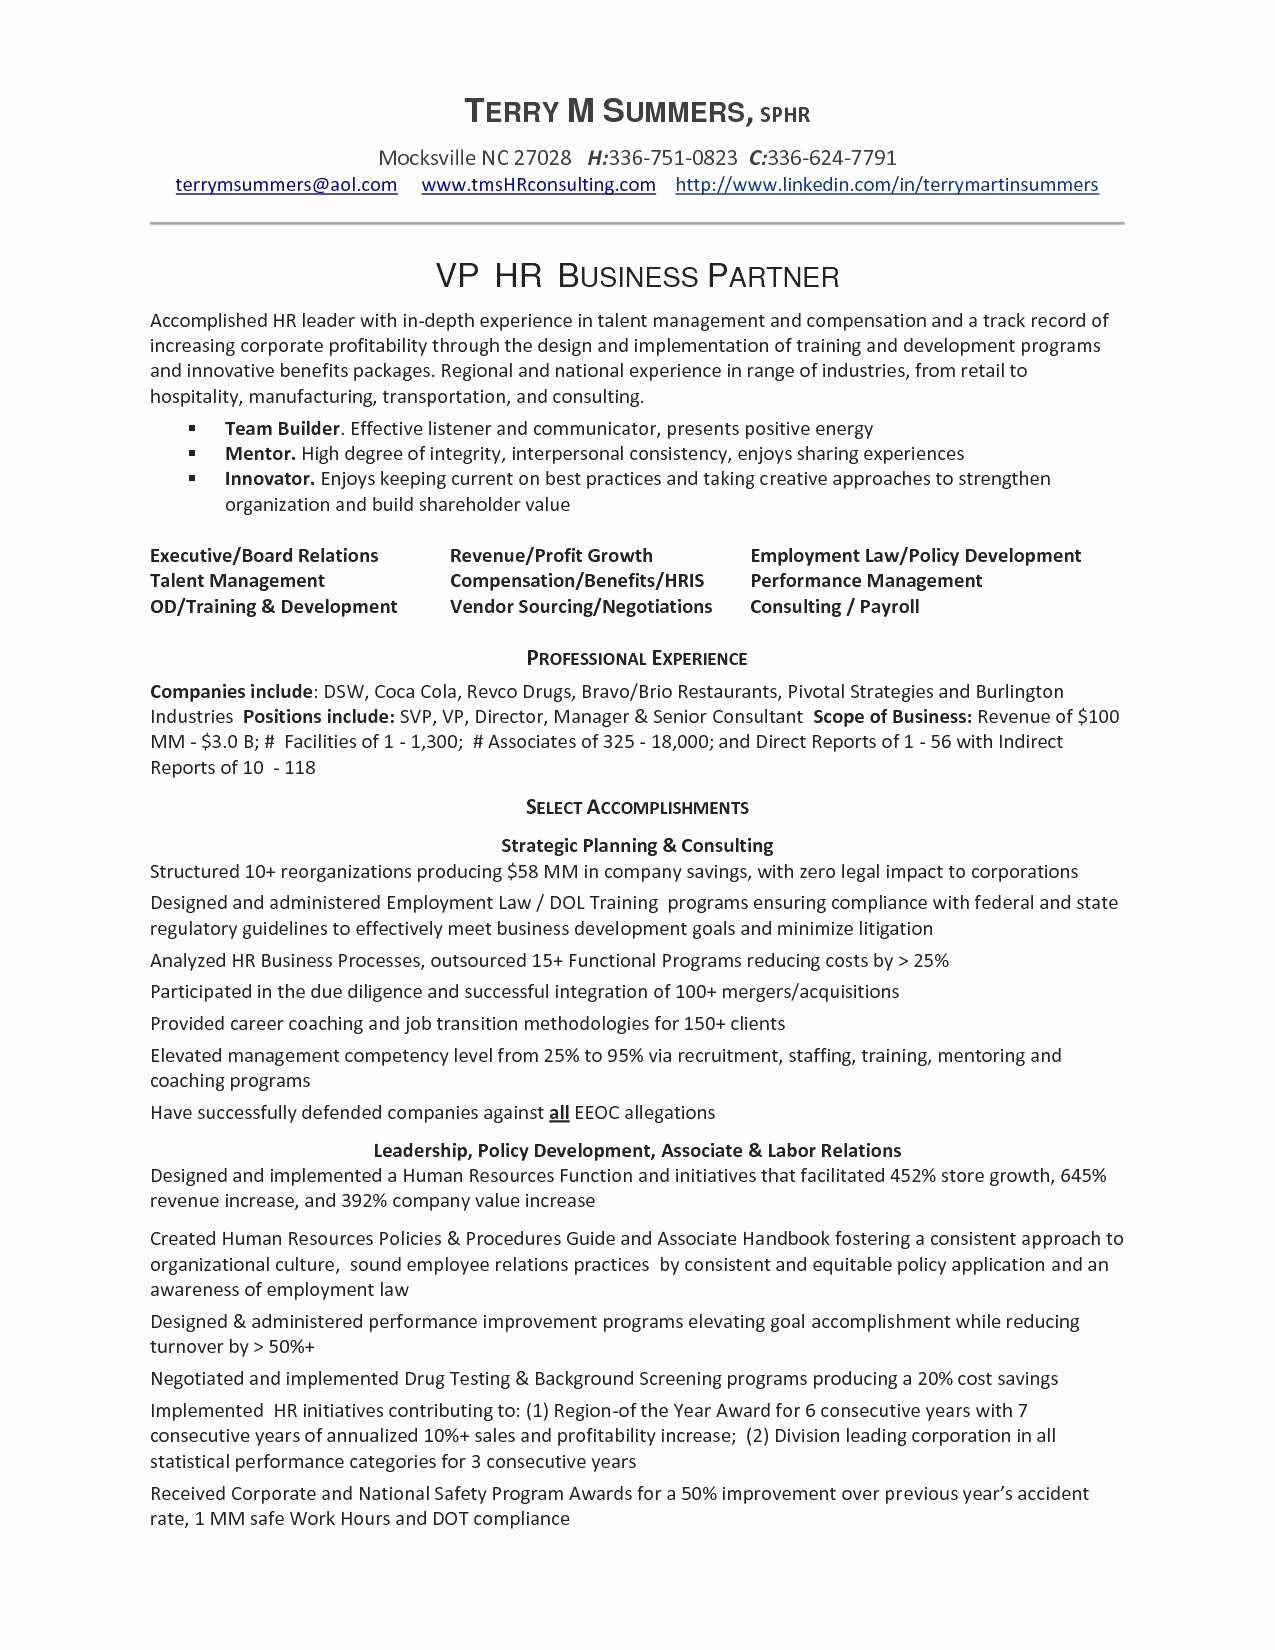 research coordinator resume example-Clinical Research Coordinator Resume 1-r